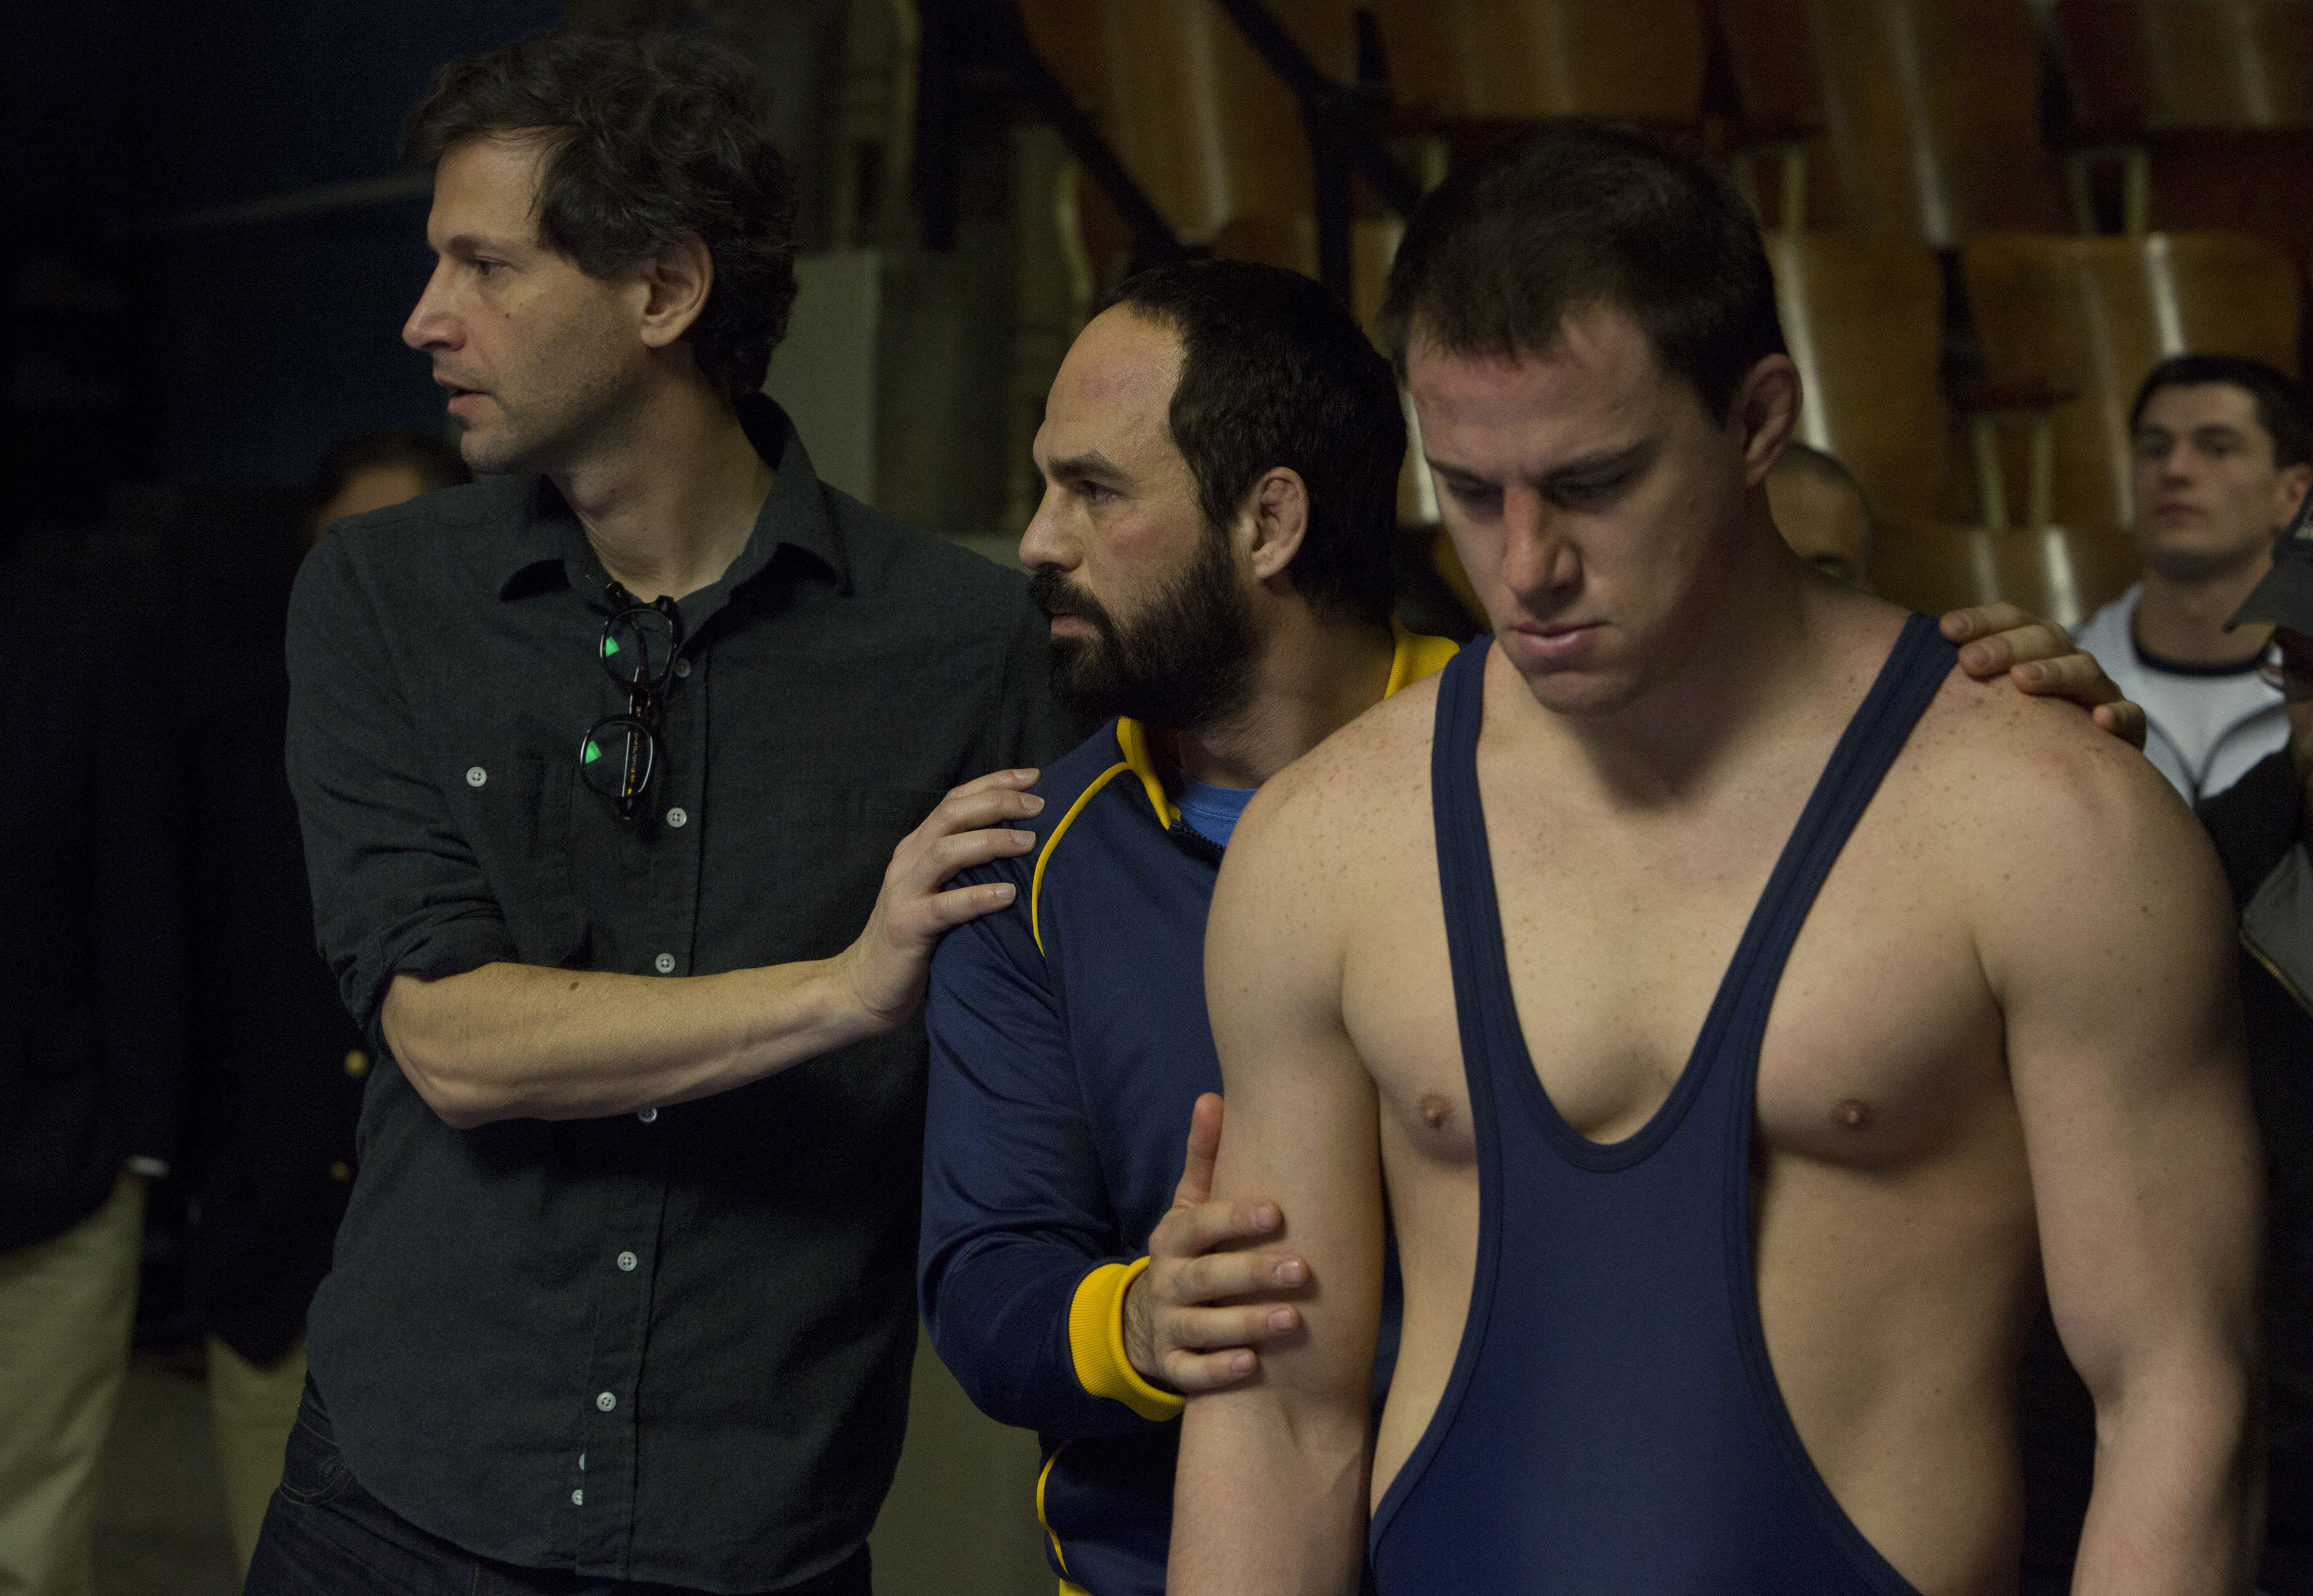 Bennett Miller, Mark Ruffalo, and Channing Tatum on the set of Foxcatcher. (Sony Pictures Classics)